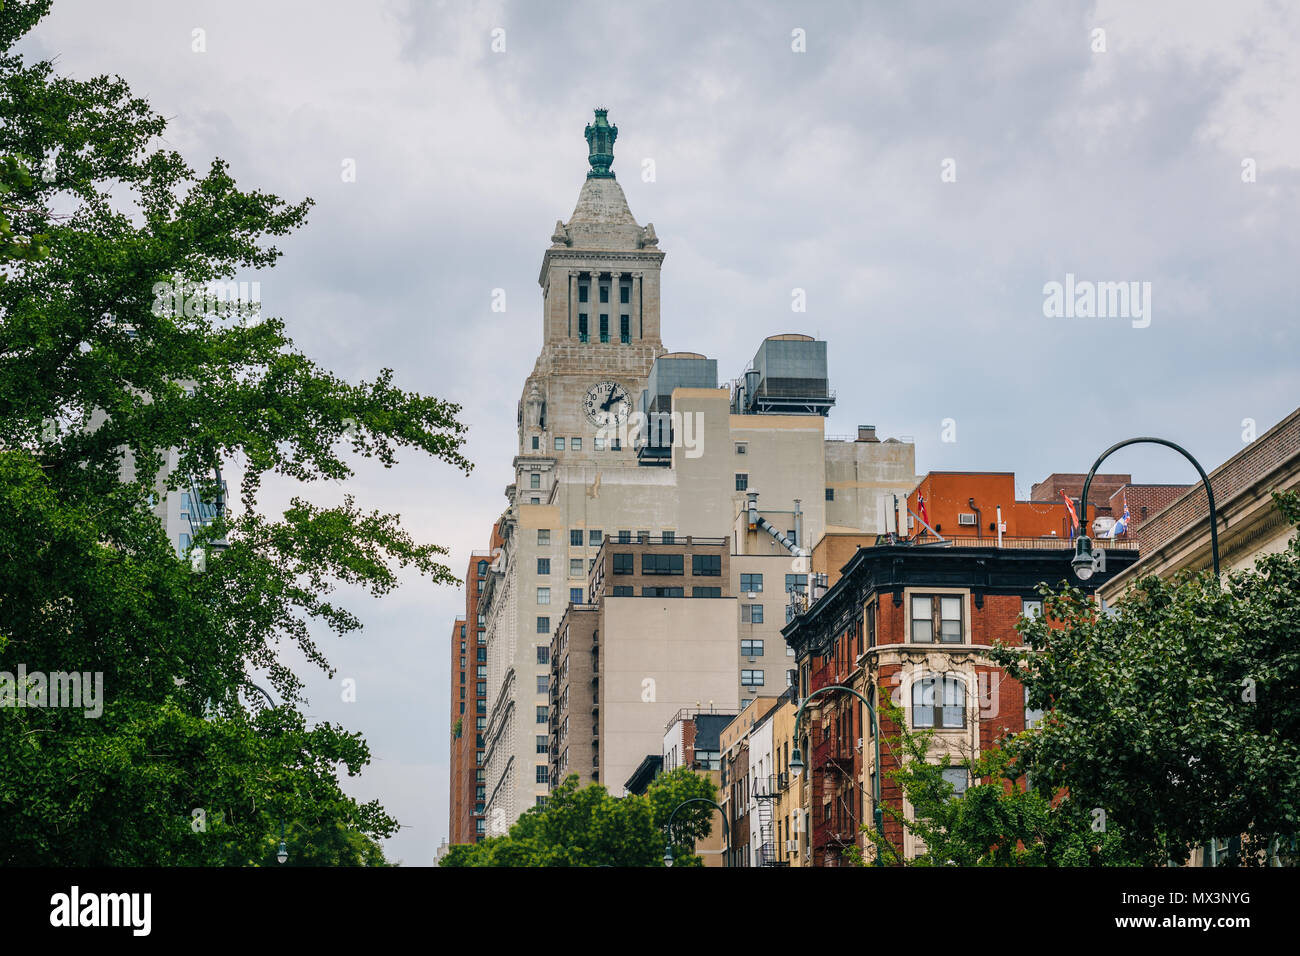 The Consolidated Edison Building, in East Village, Manhattan, New York City. - Stock Image